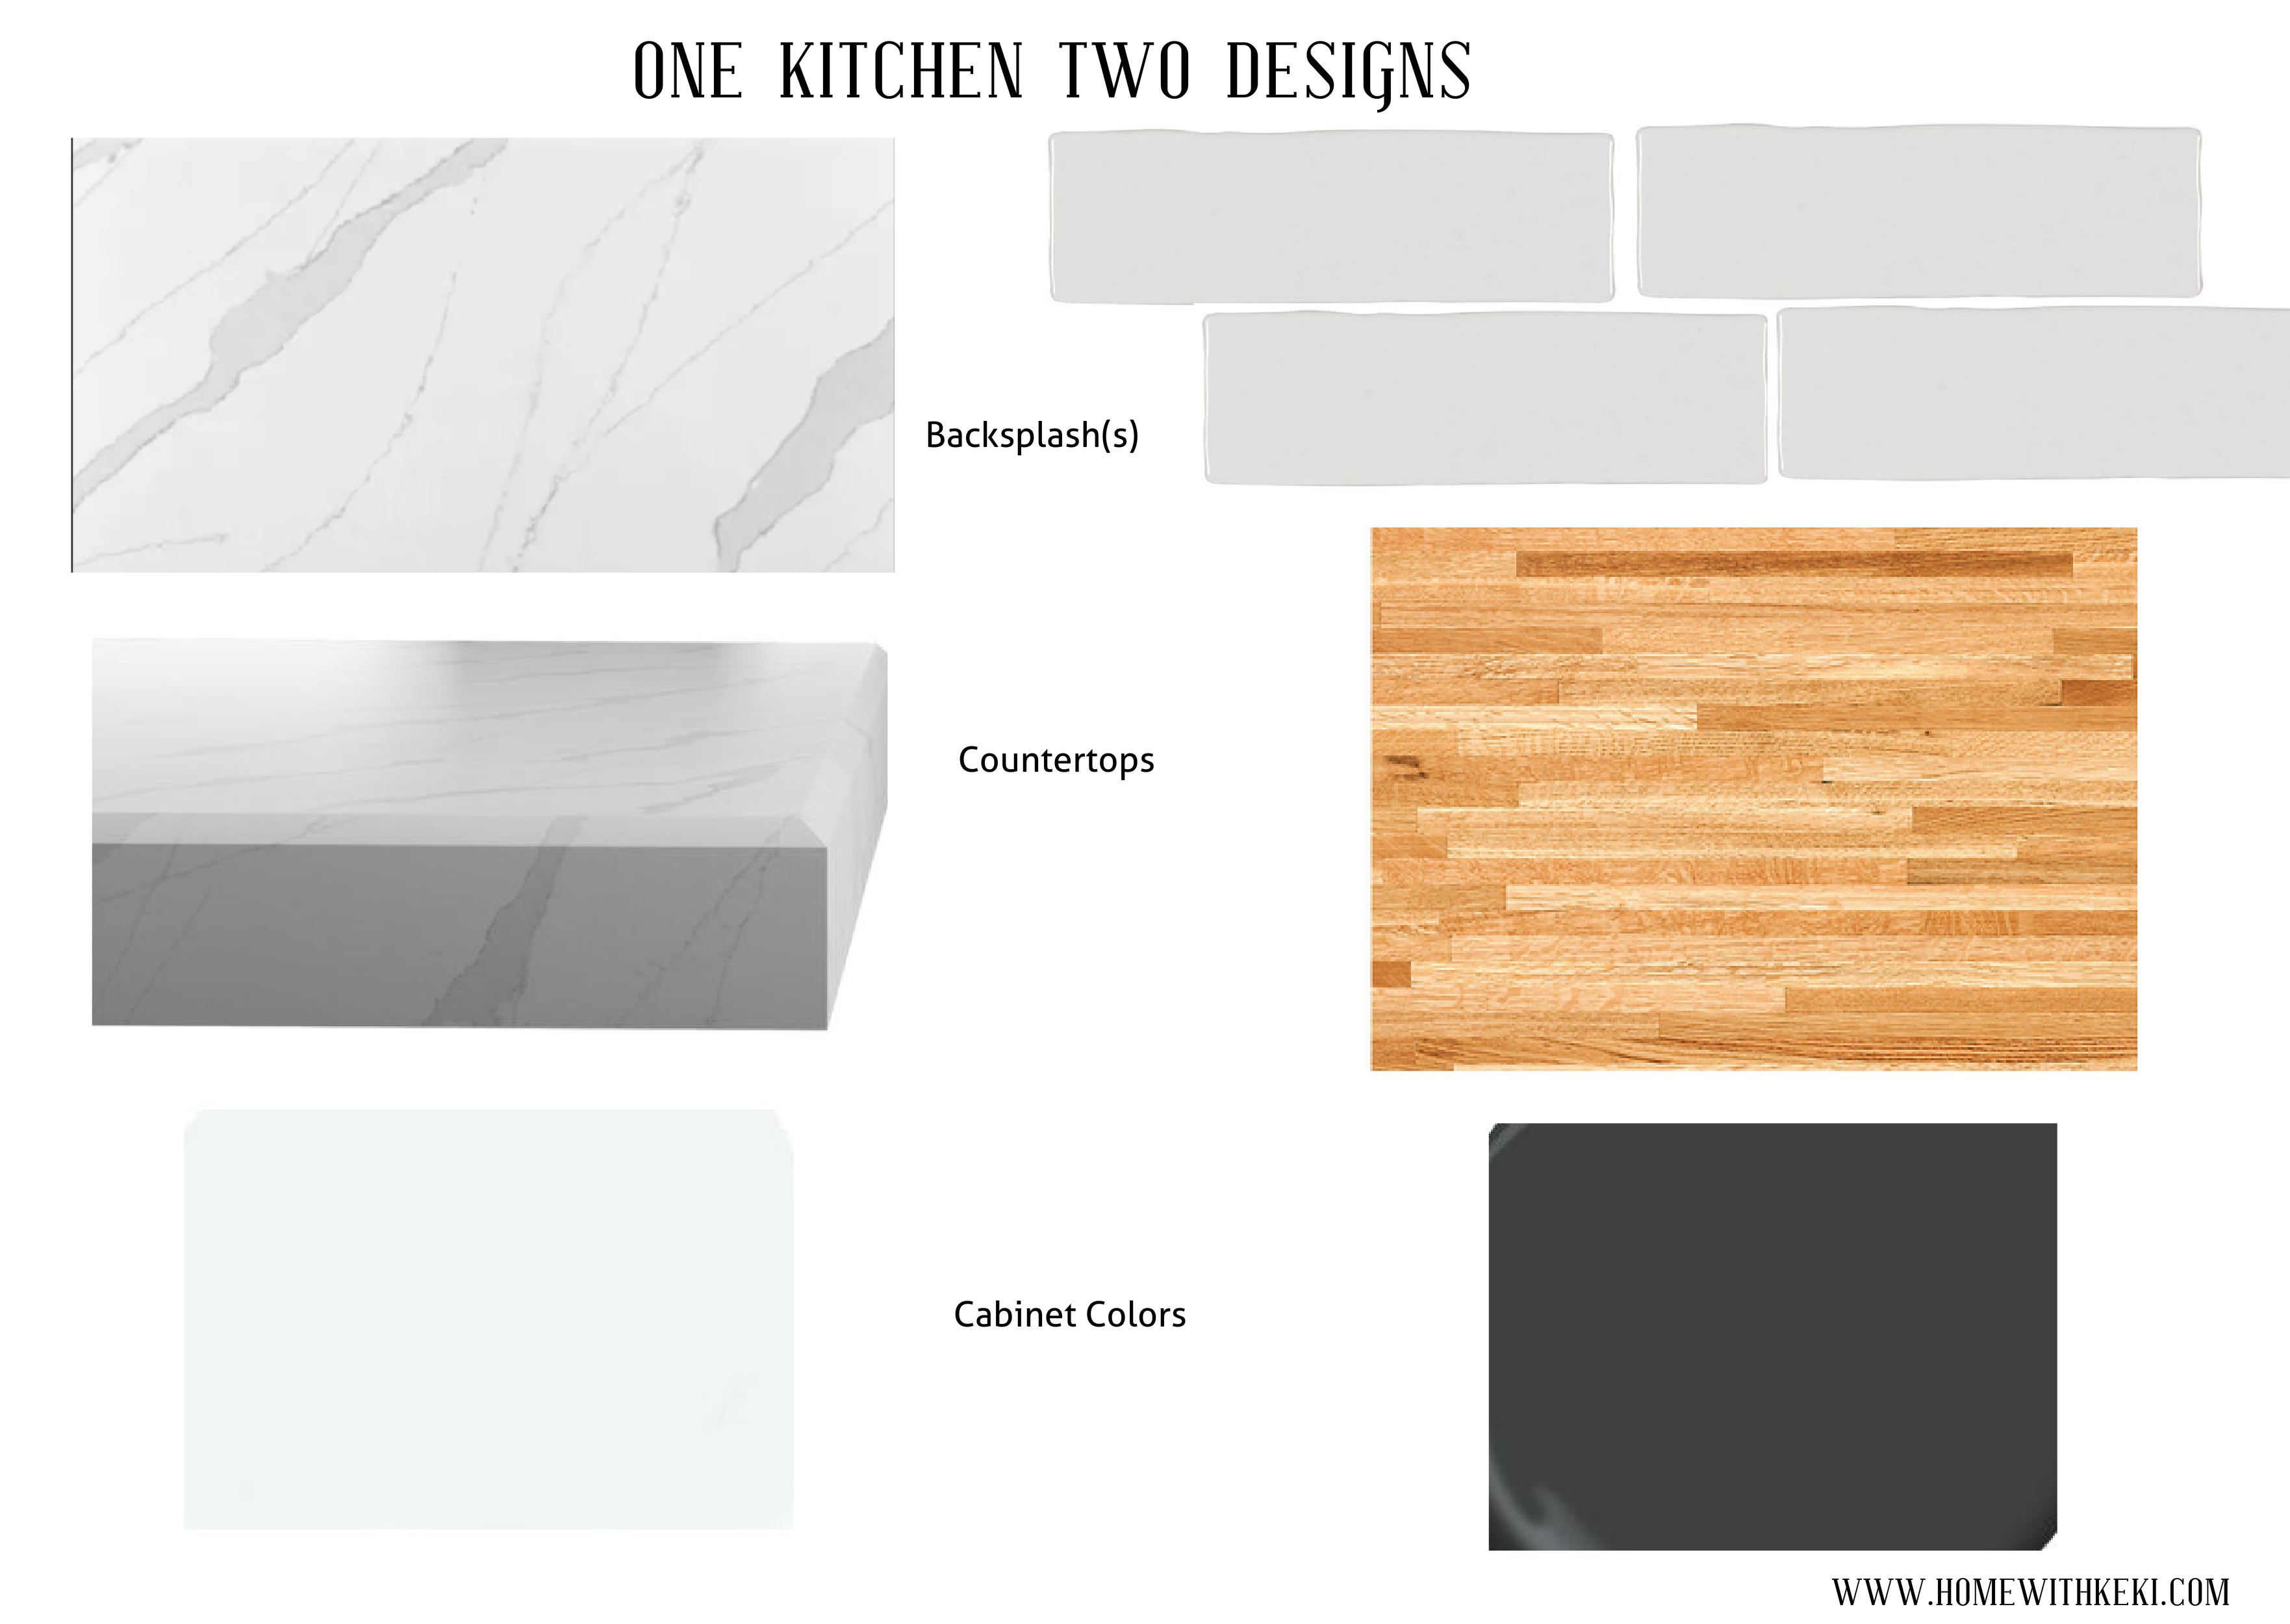 - Butcher Block Backsplash Kitchen - Home With Keki